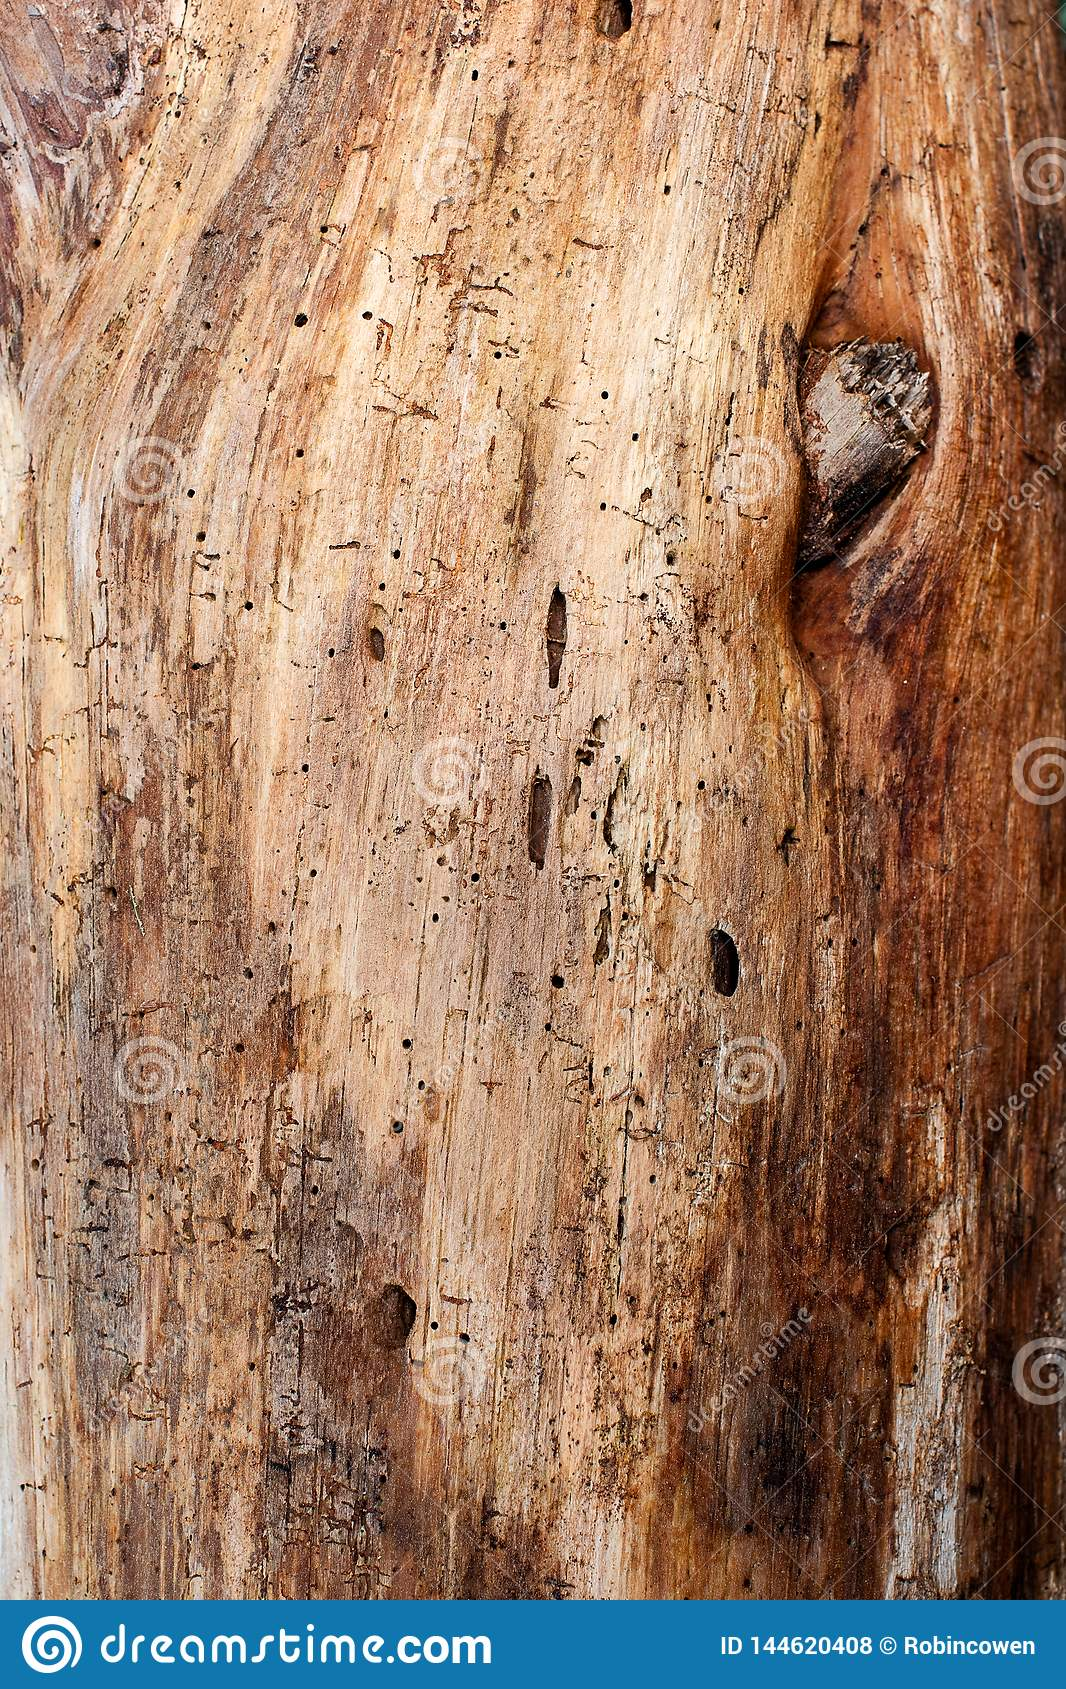 Wood Grain and Knot of a Pine Tree